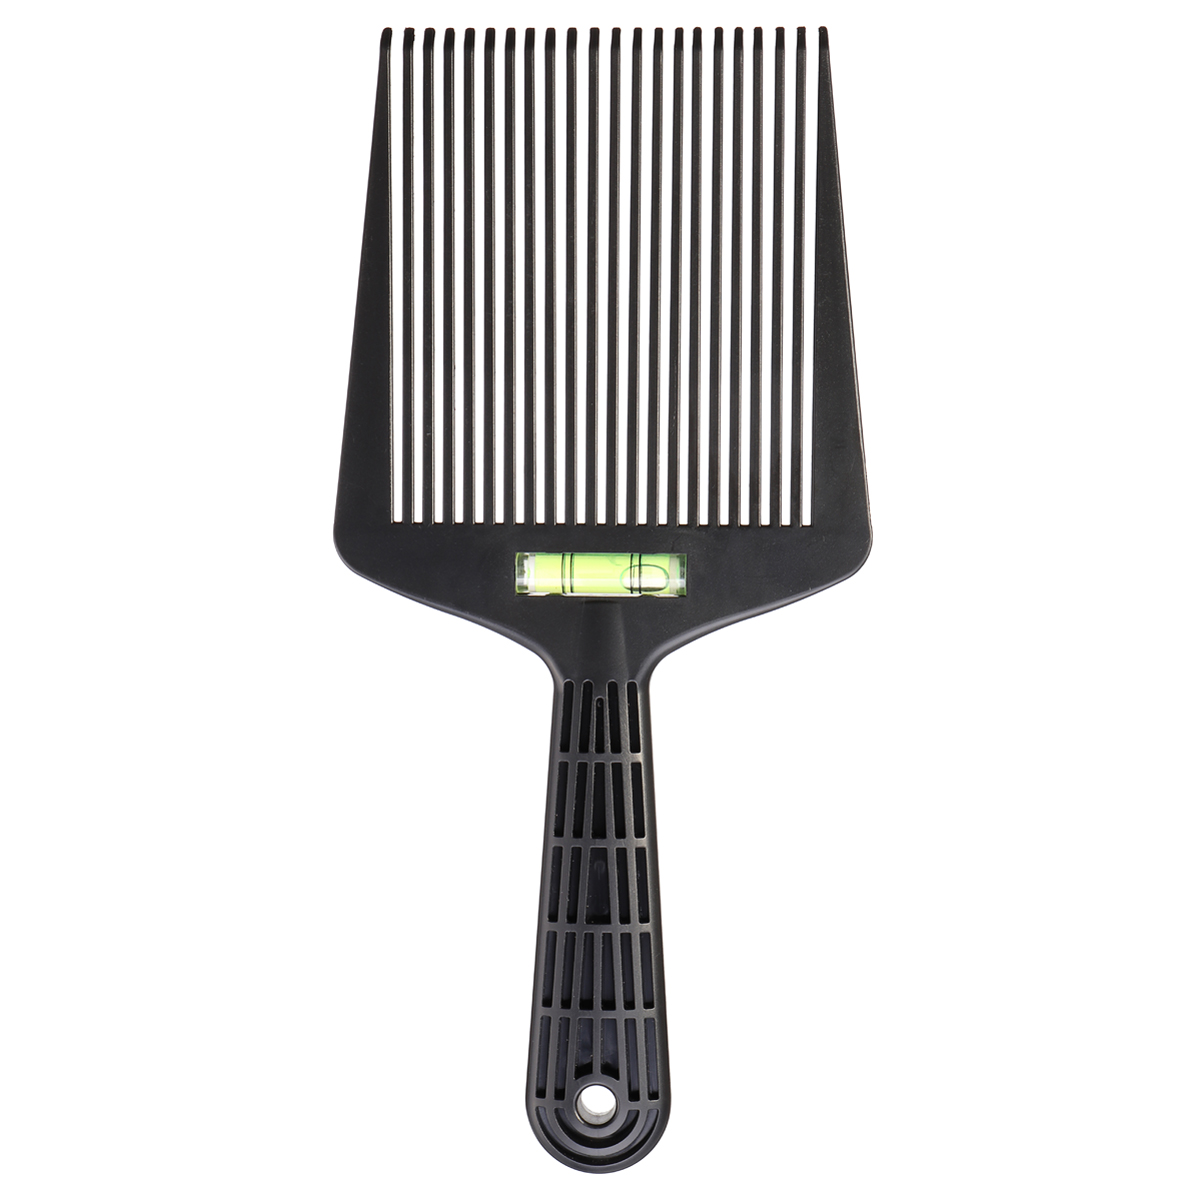 Wide Tooth Flat Comb Barber Salon Hairstyling Dyeing Coloring Tool Fork Insert Pick Afro Combs for Hairdressing janeke silver large wide tooth comb